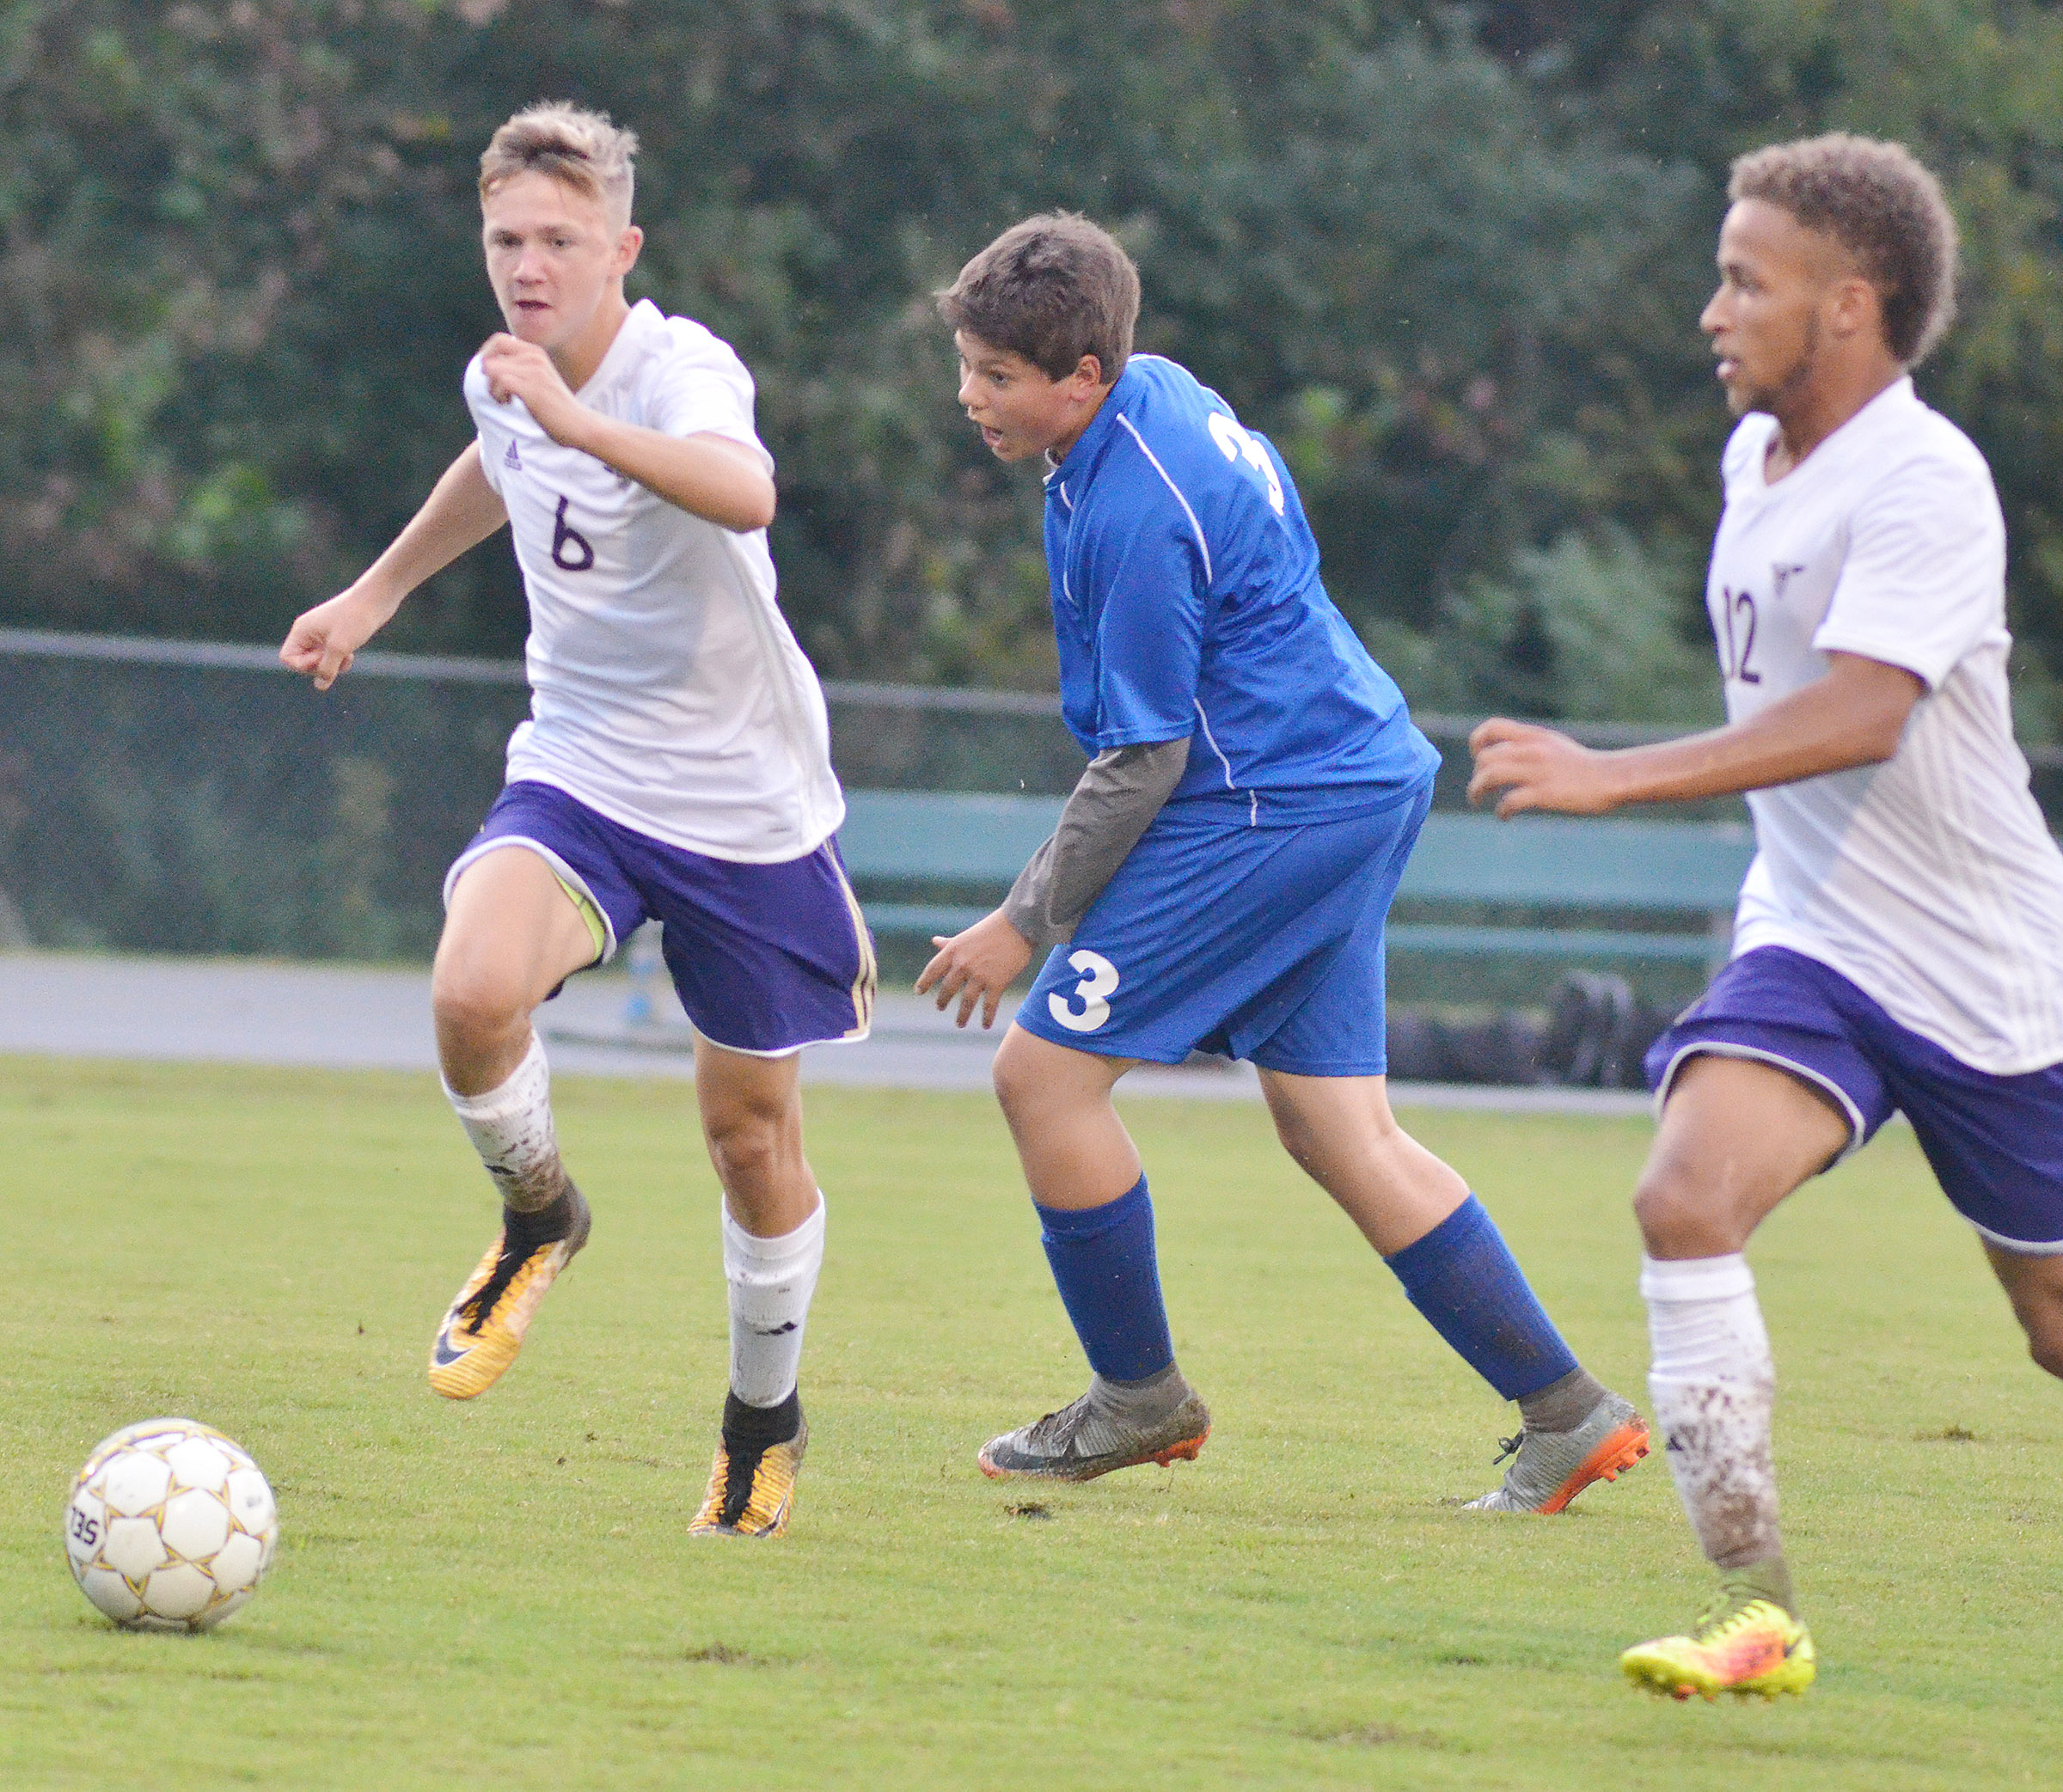 CHS freshman Blase Wheatley, at left, and senior Ethan Lay run to the ball.